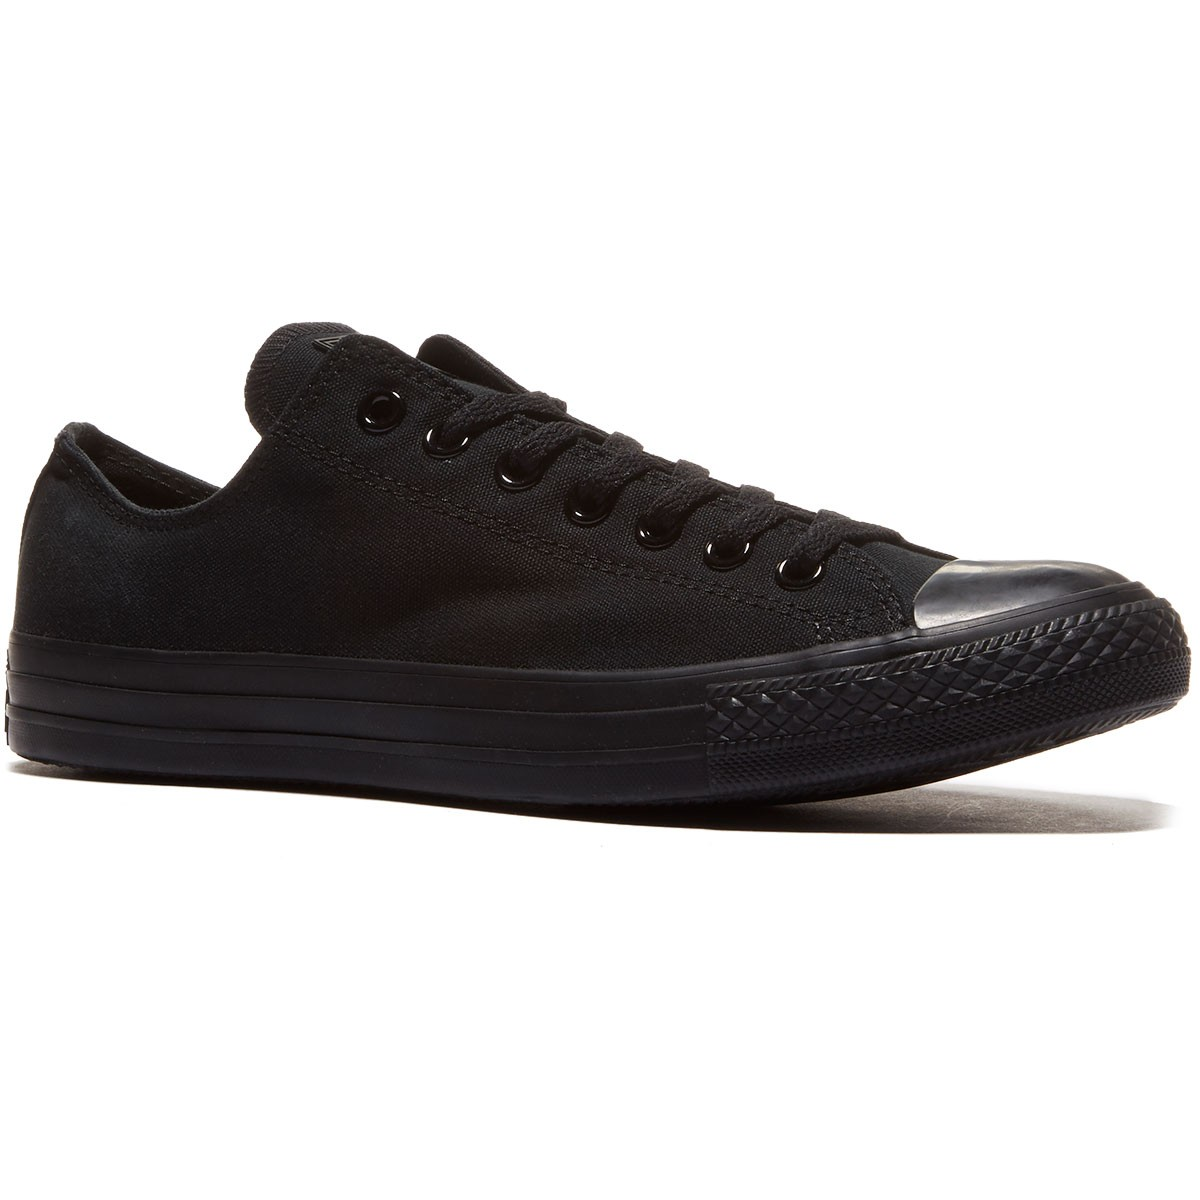 Converse Chuck Taylor All Star Lo Shoes - Mono Black - 8.0